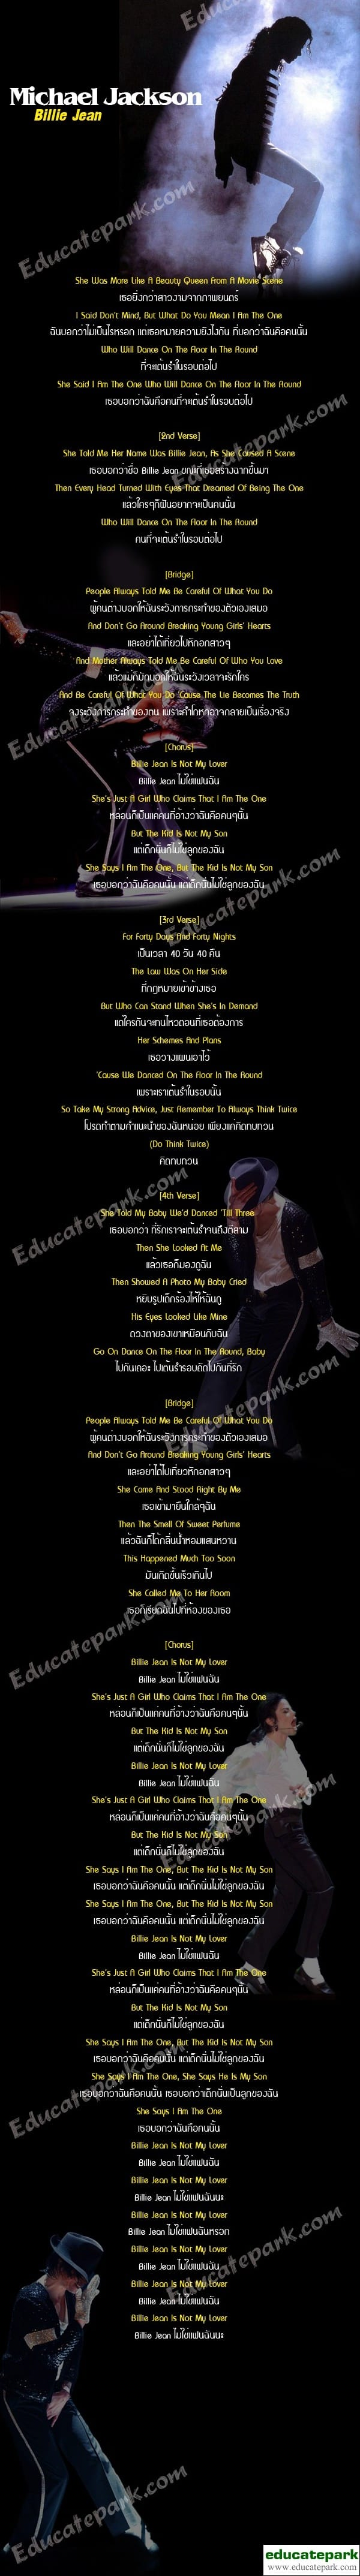 แปลเพลง Billie Jean - Michael jackson